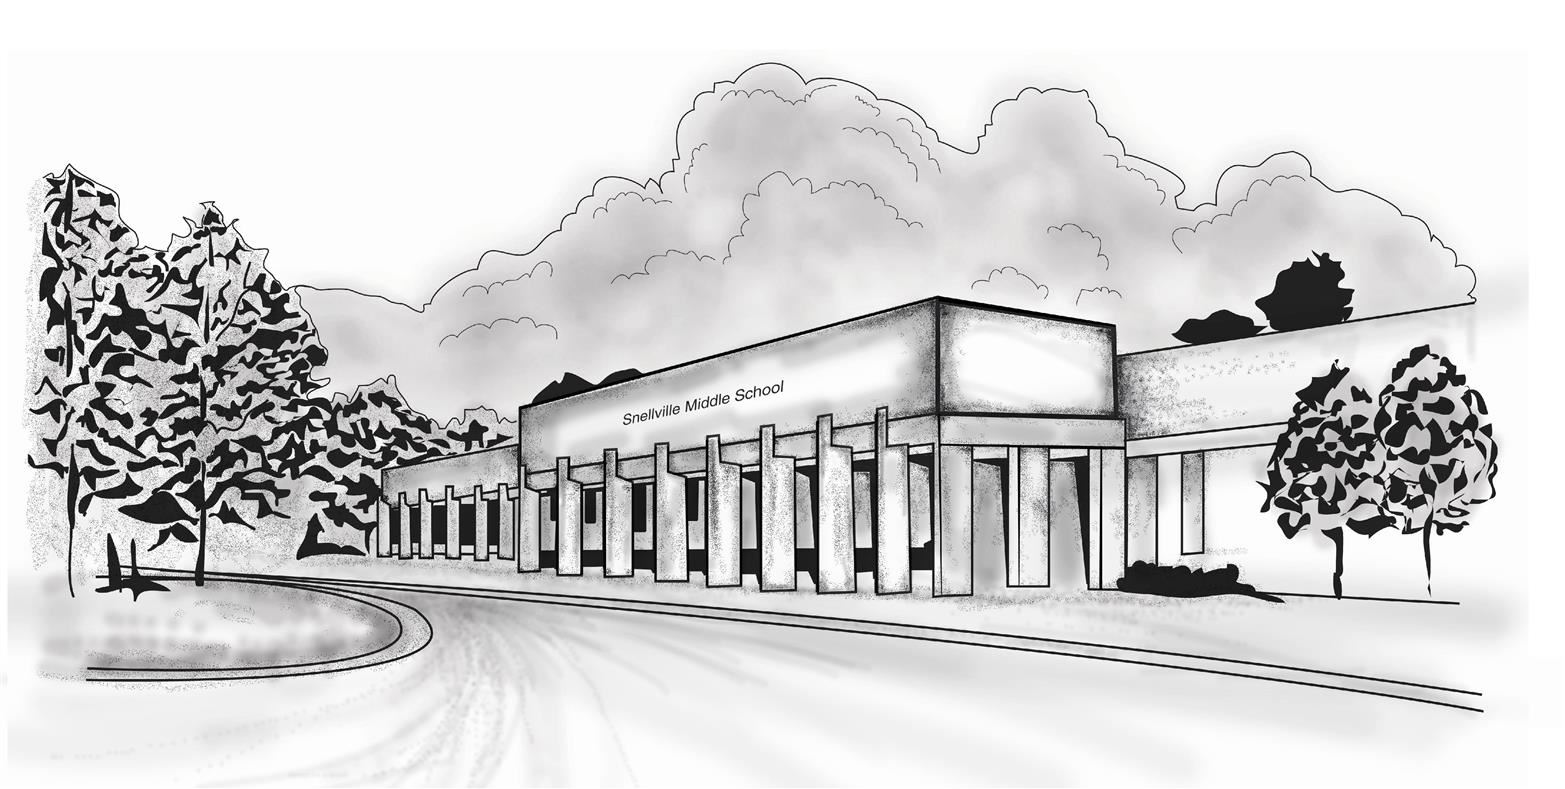 Sketch of Snellville Middle School